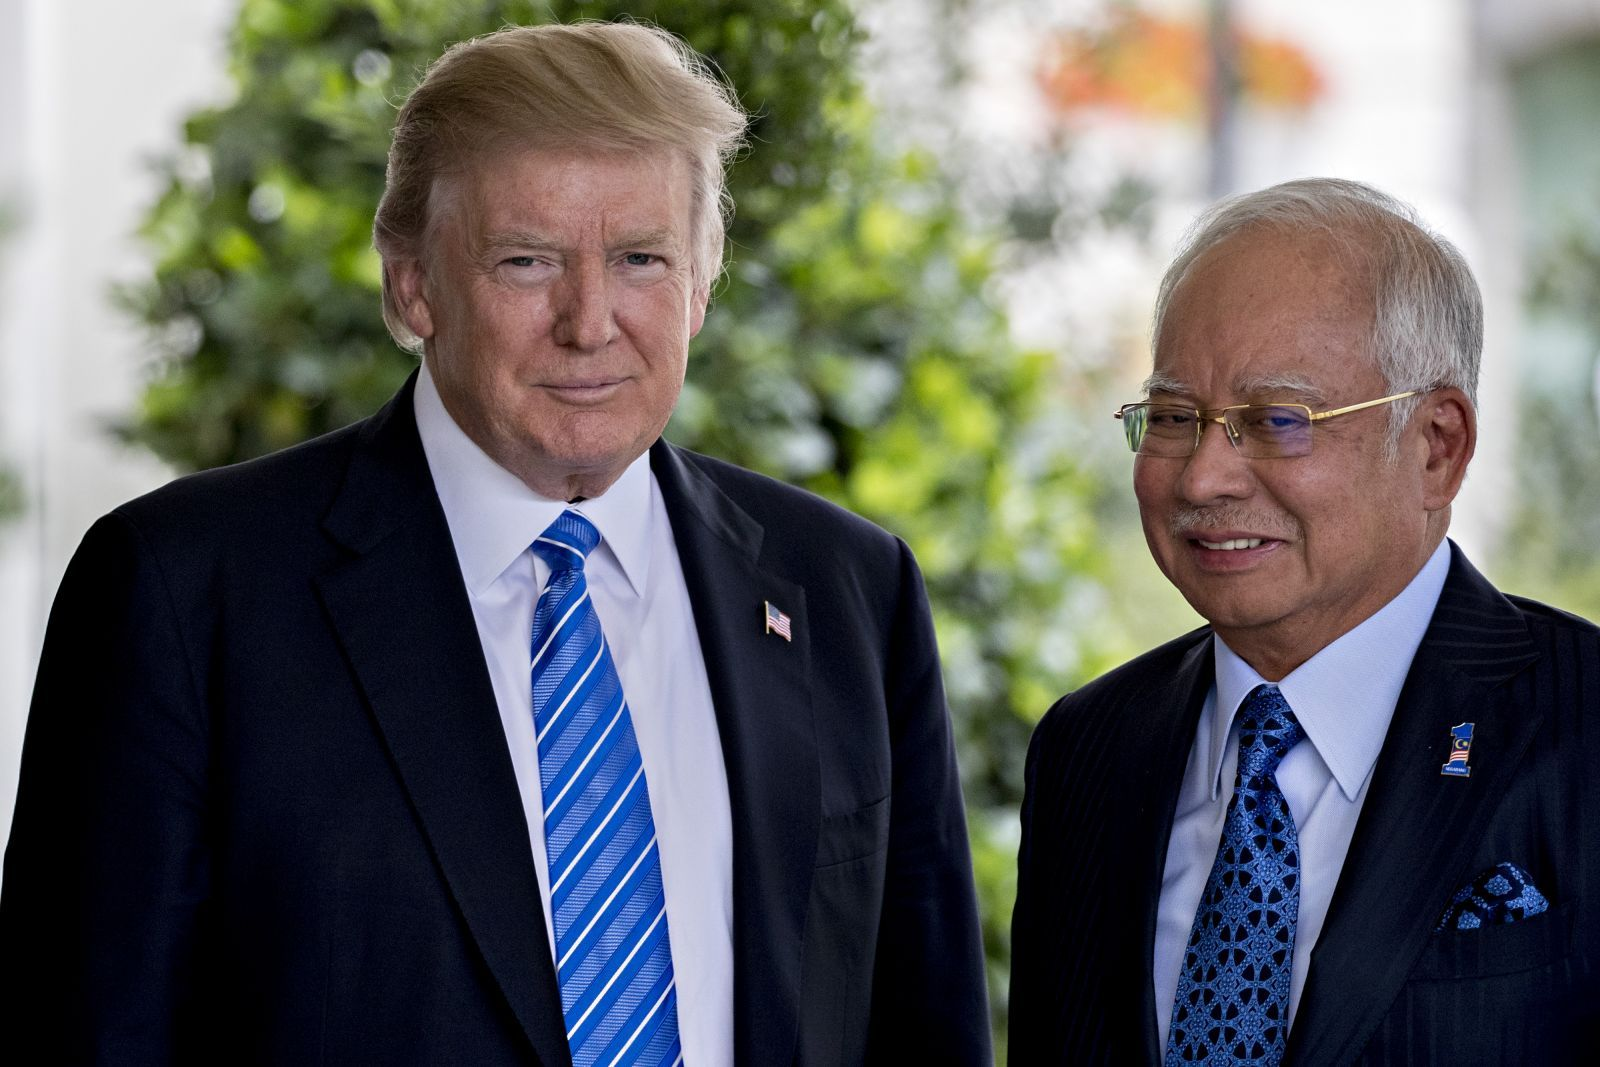 Donald Trump welcoming PM Najib at the White House in September.